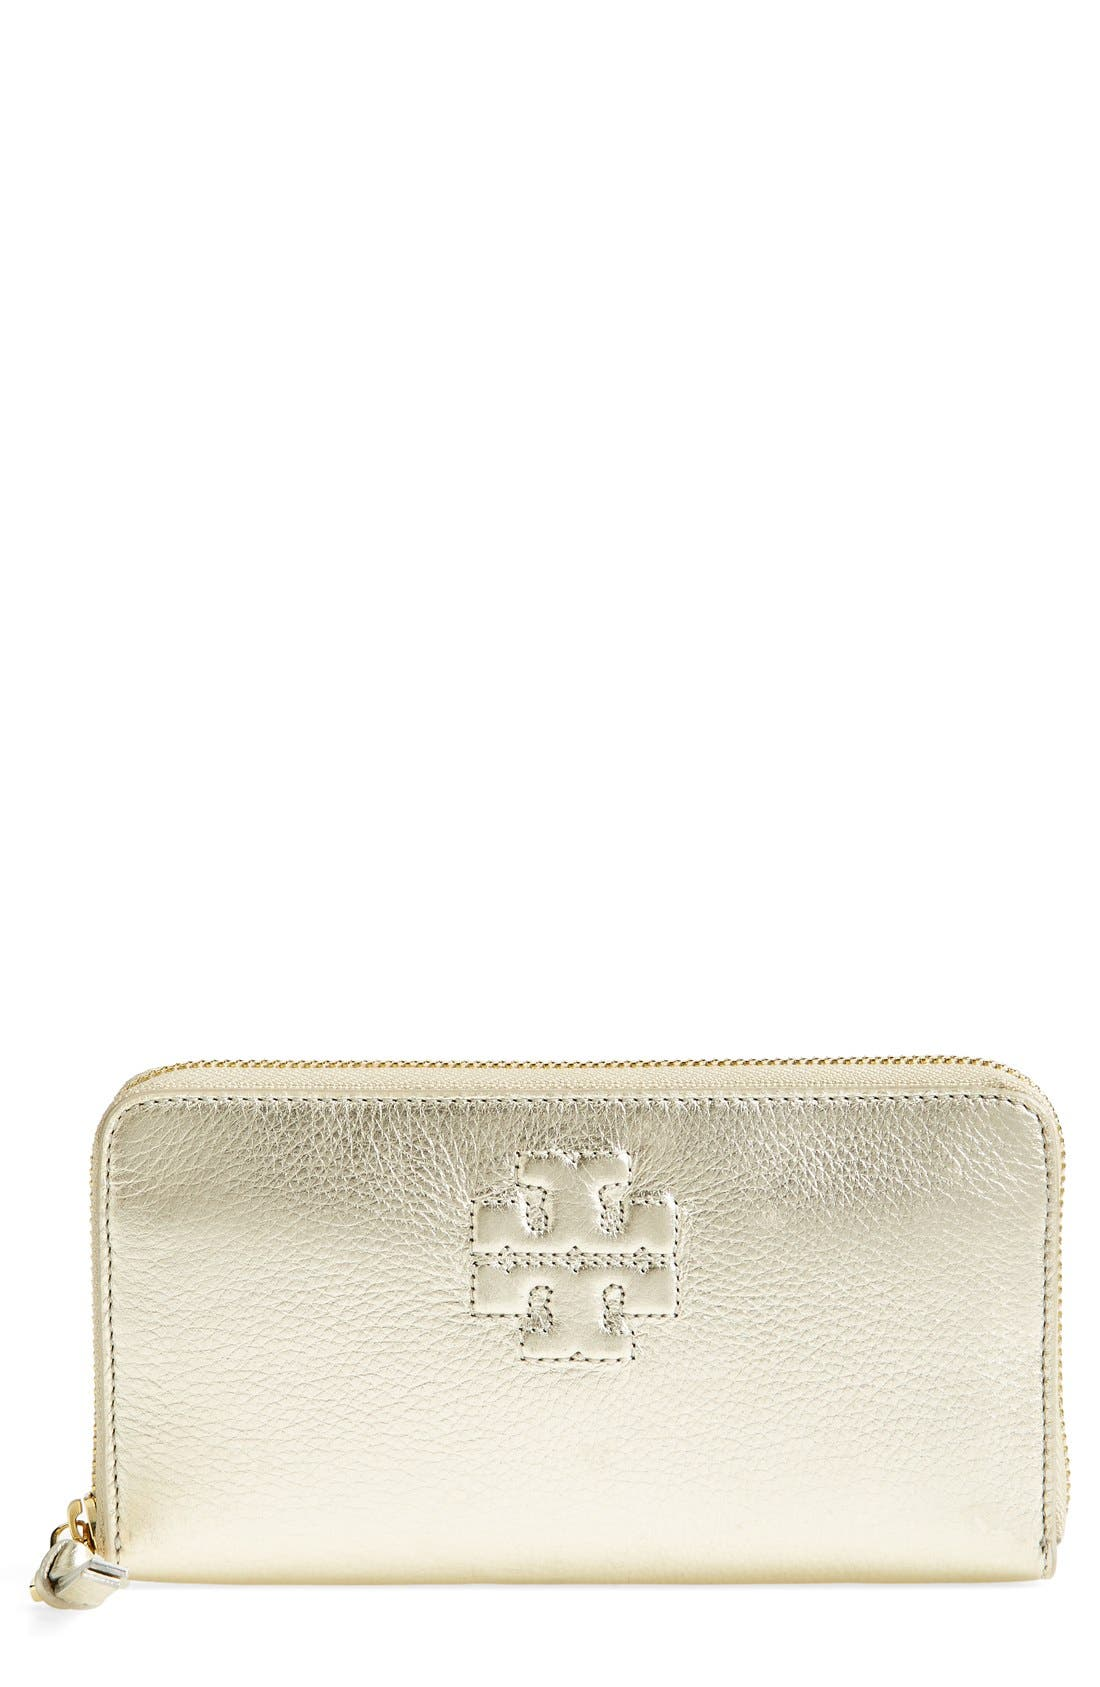 Main Image - Tory Burch 'Thea' Continental Wallet